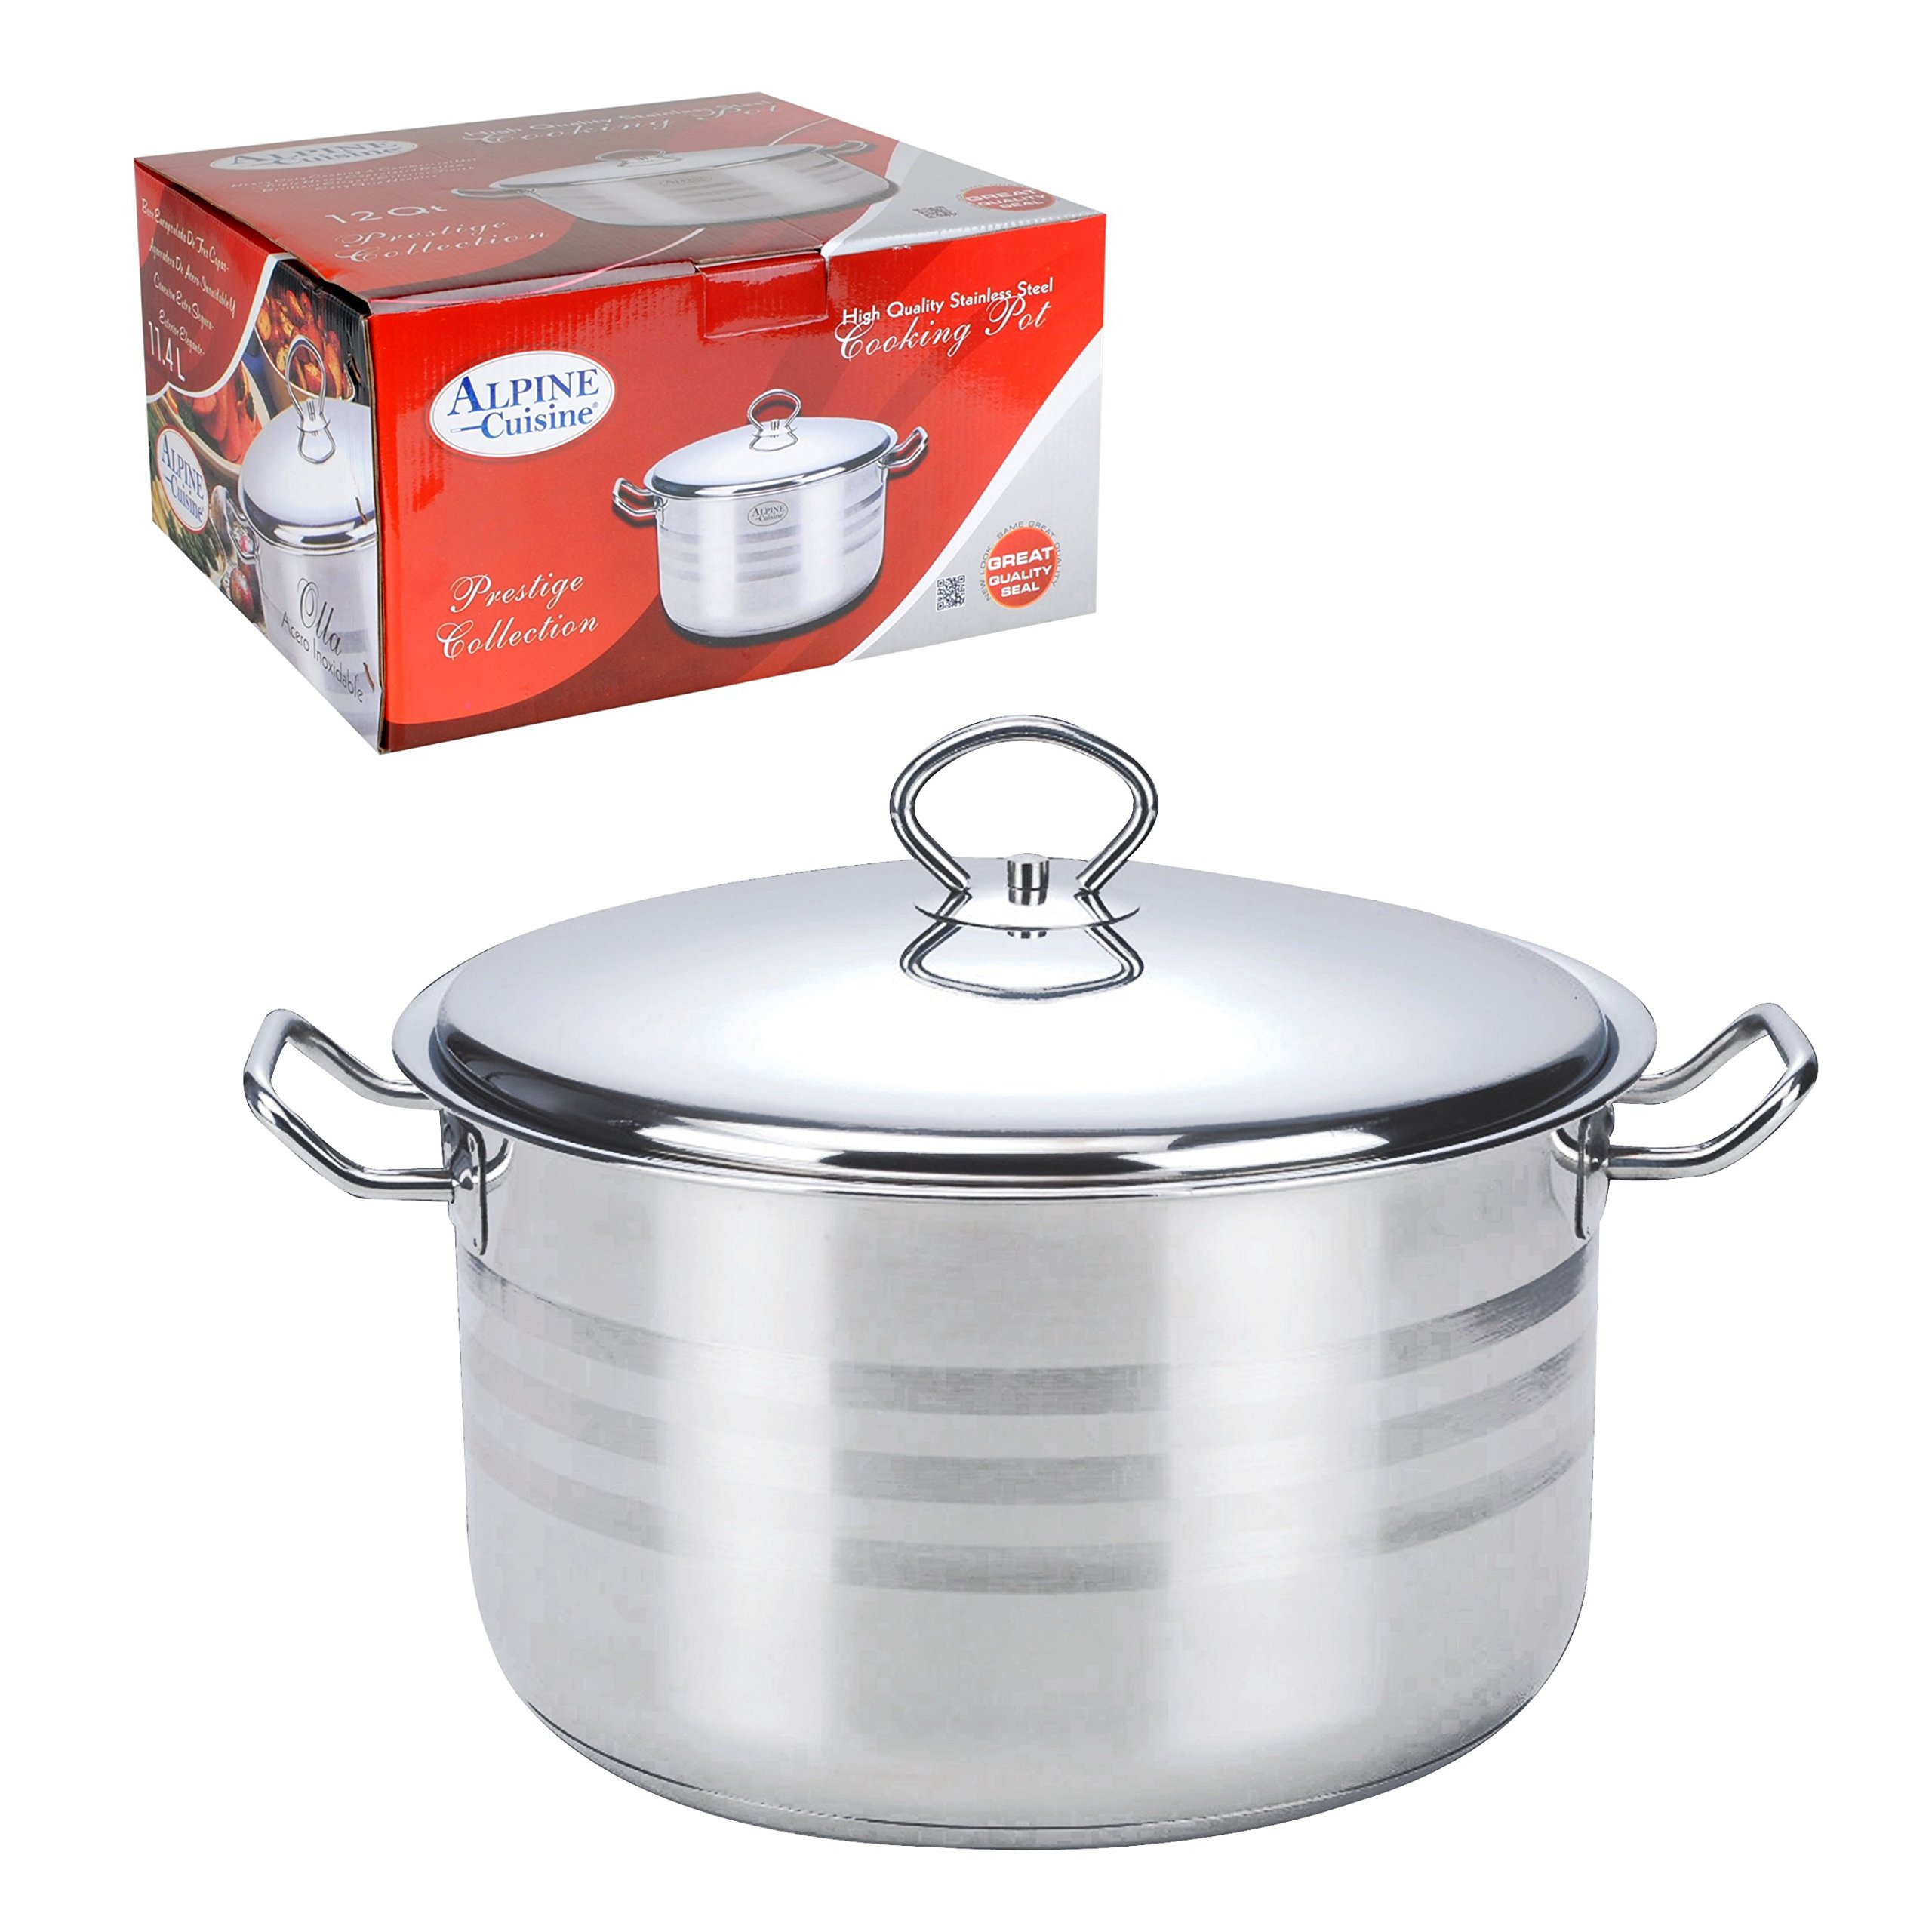 Aramco Alpine Gourmet Dutch Oven, 40 quart, Stainless Steel